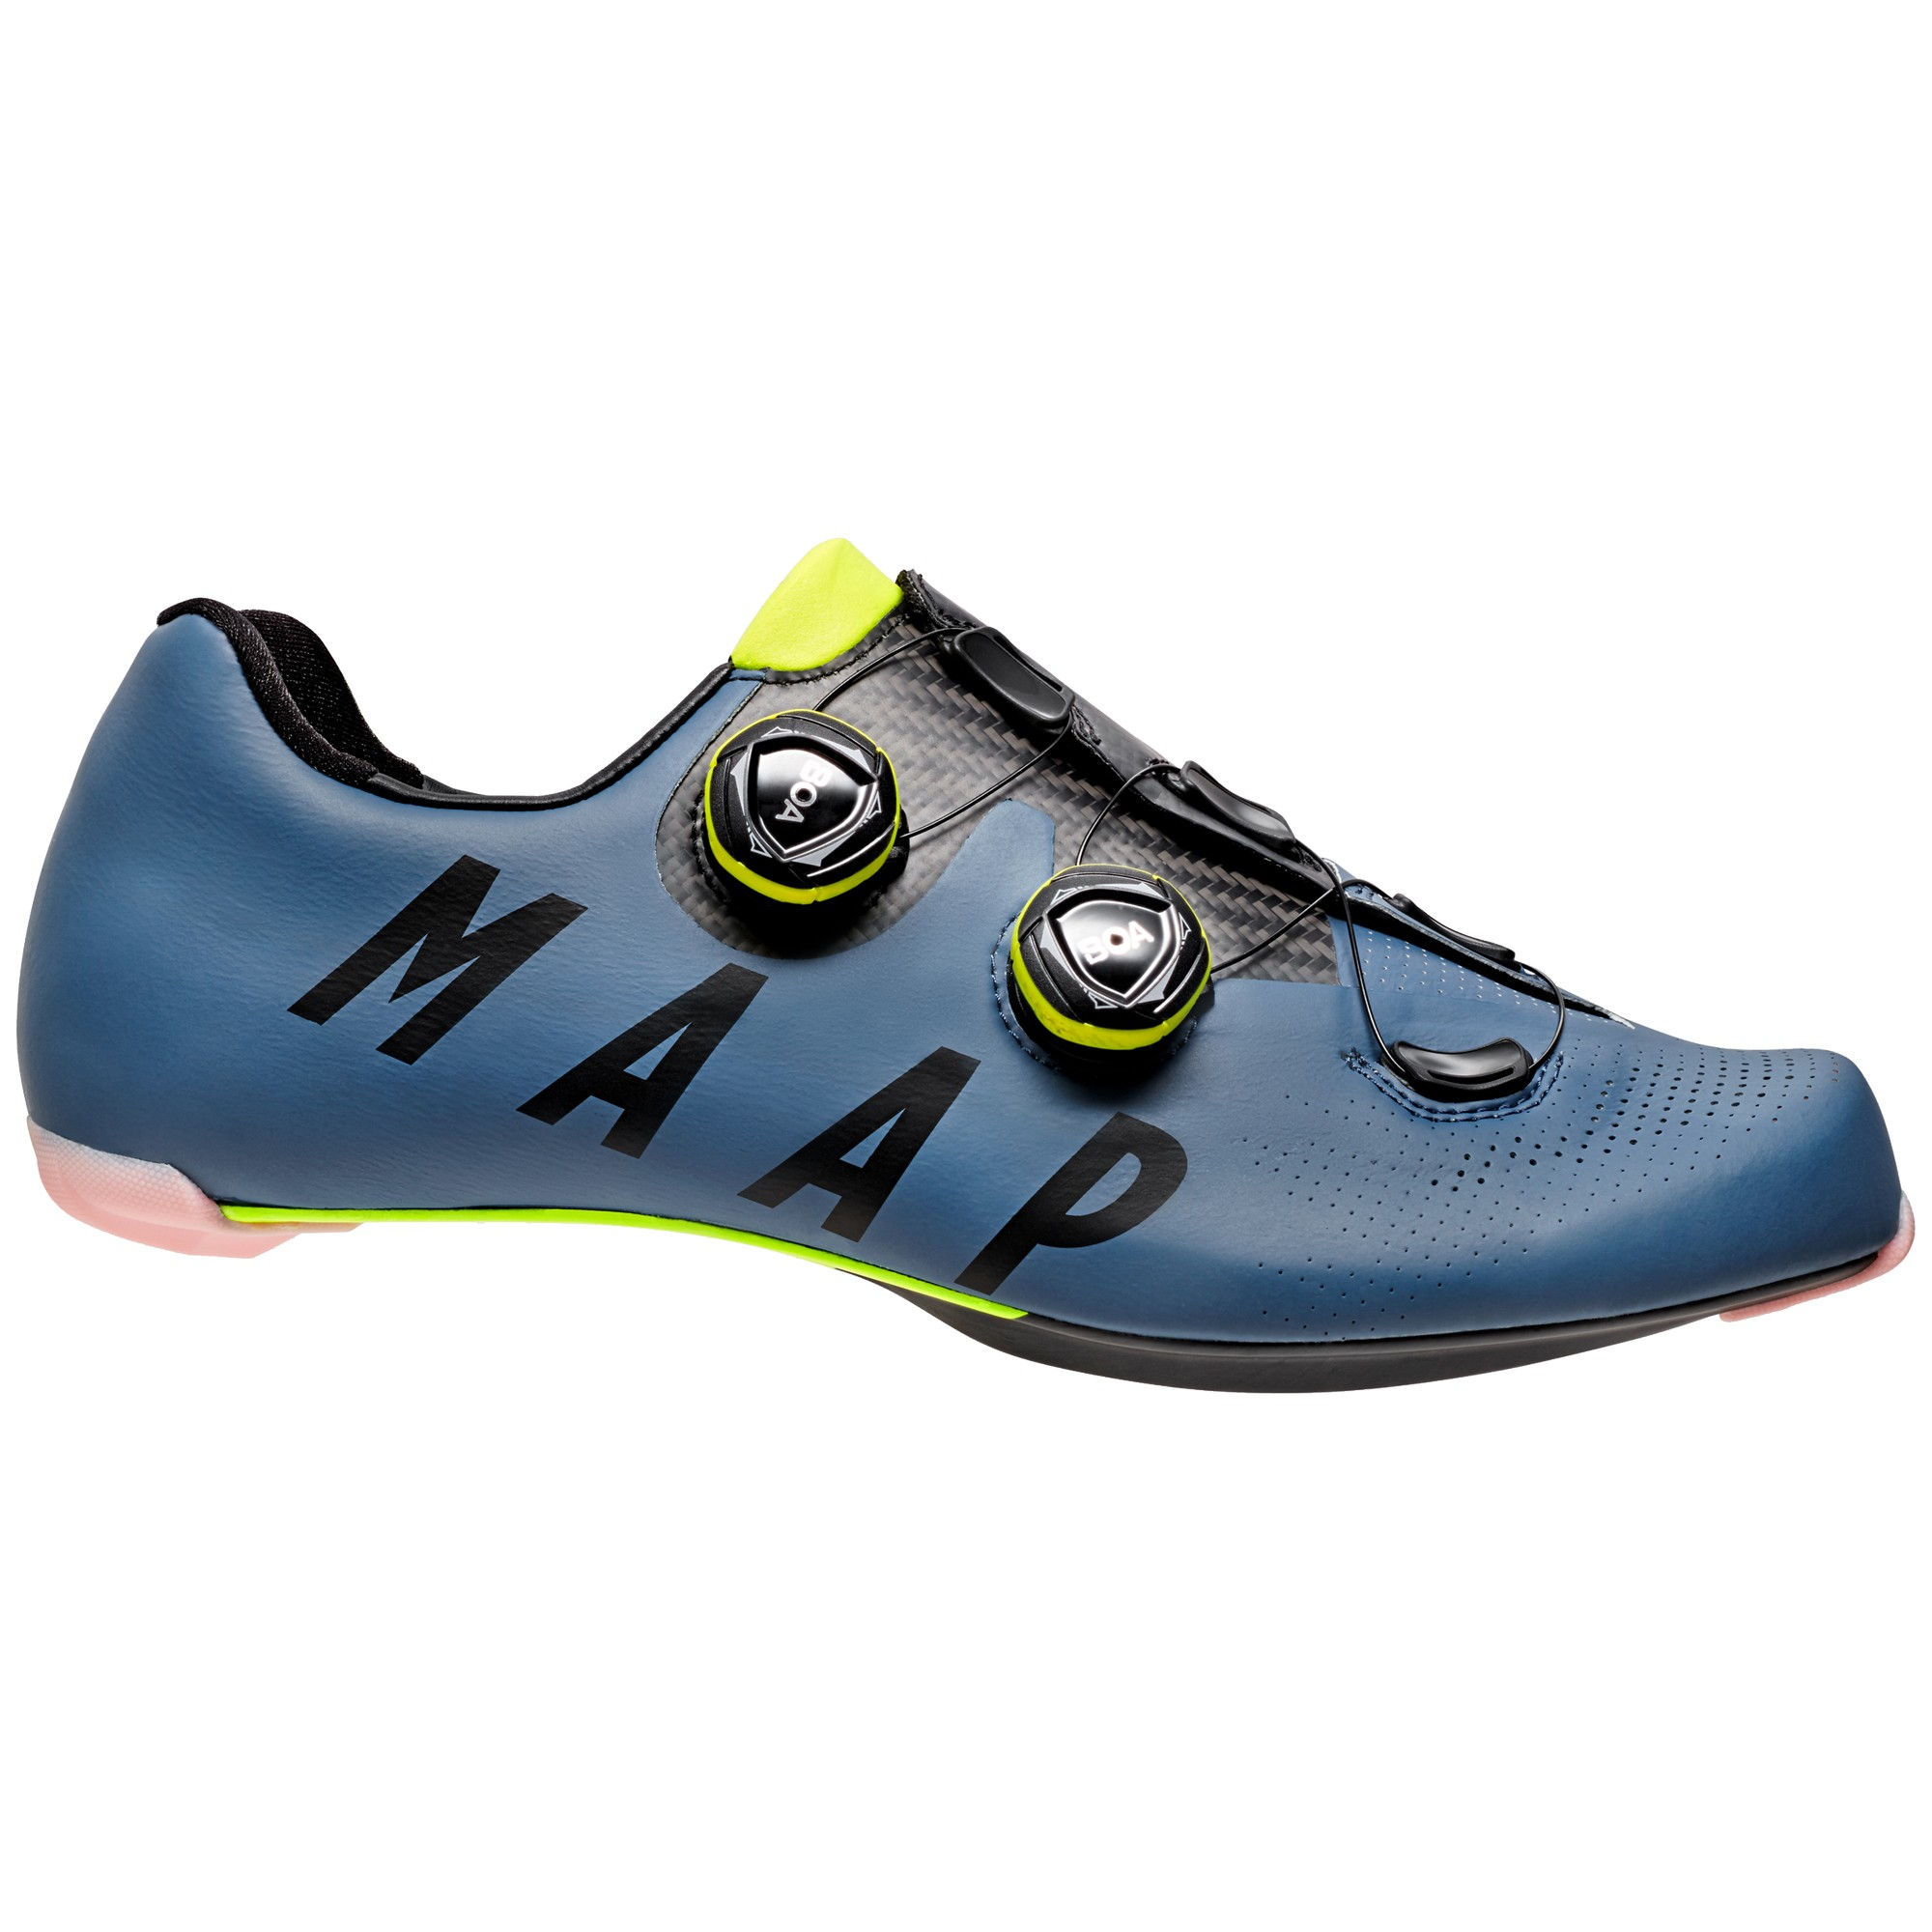 MAAP Suplest Edge+ Pro Road Cycling